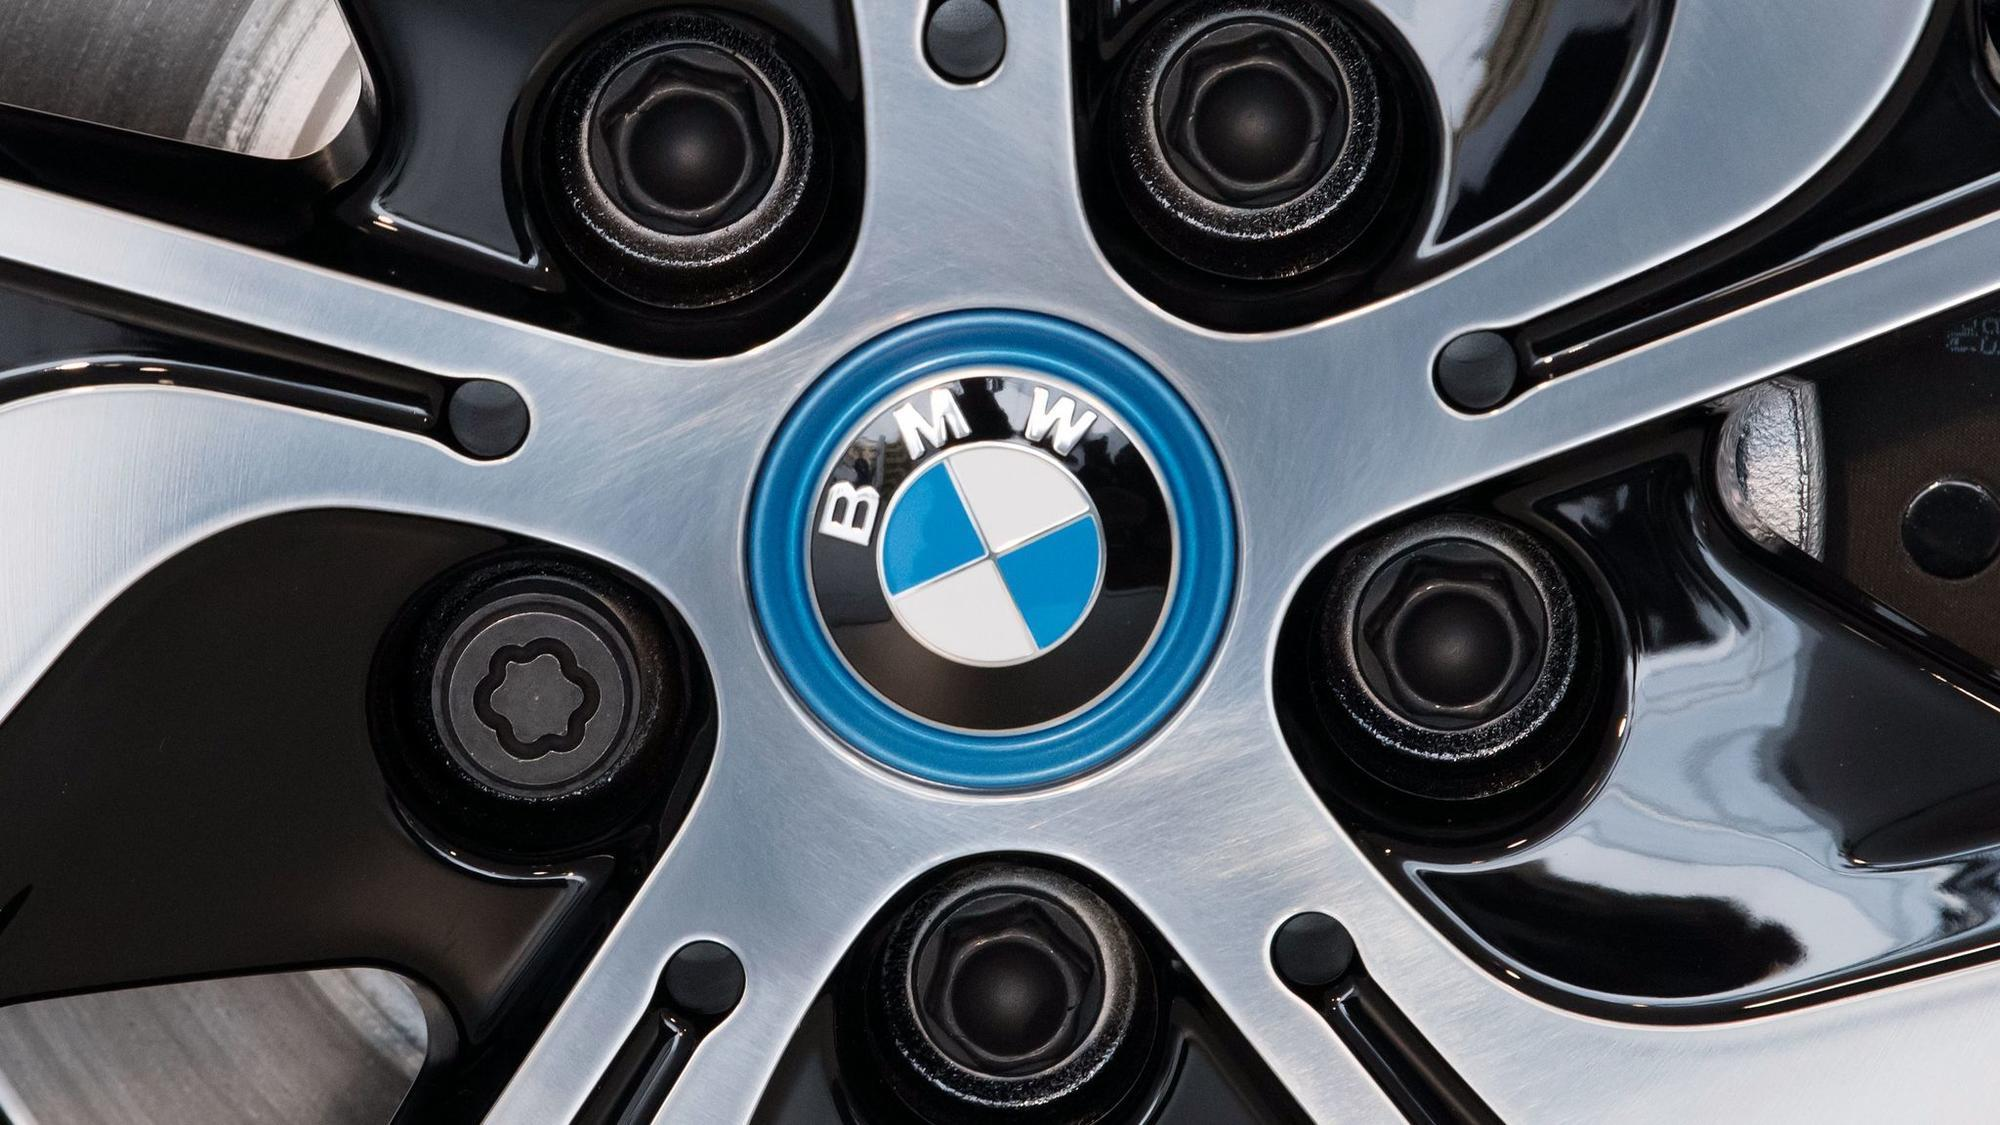 BMW recalls 1 million plus vehicles for fire risk and says to park